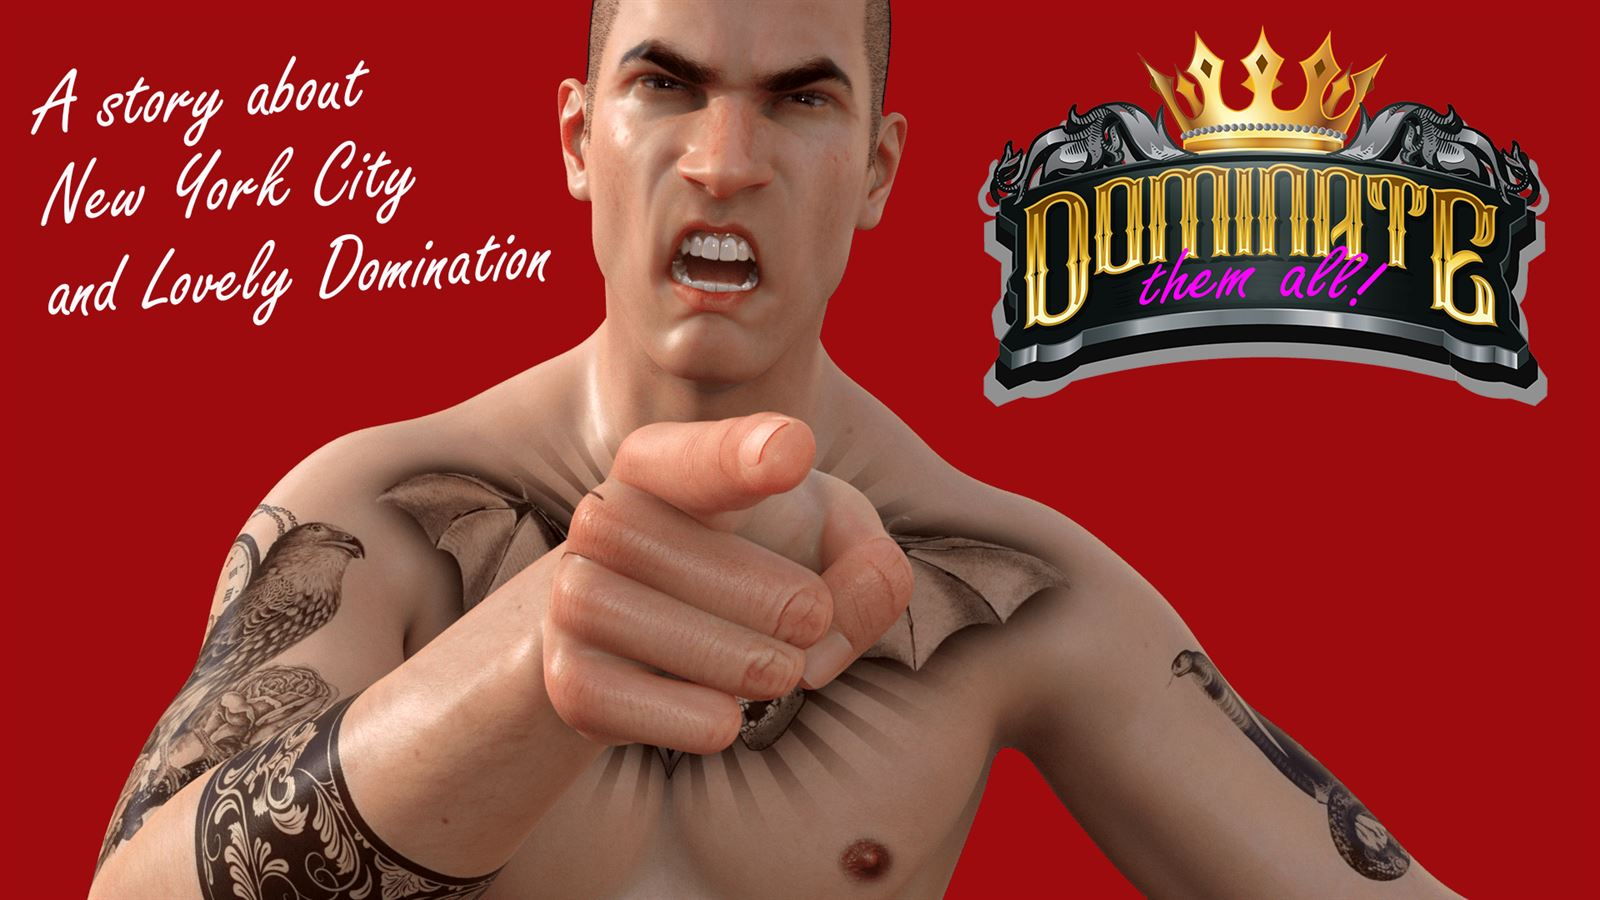 Dominate Them All Adult Game Cover